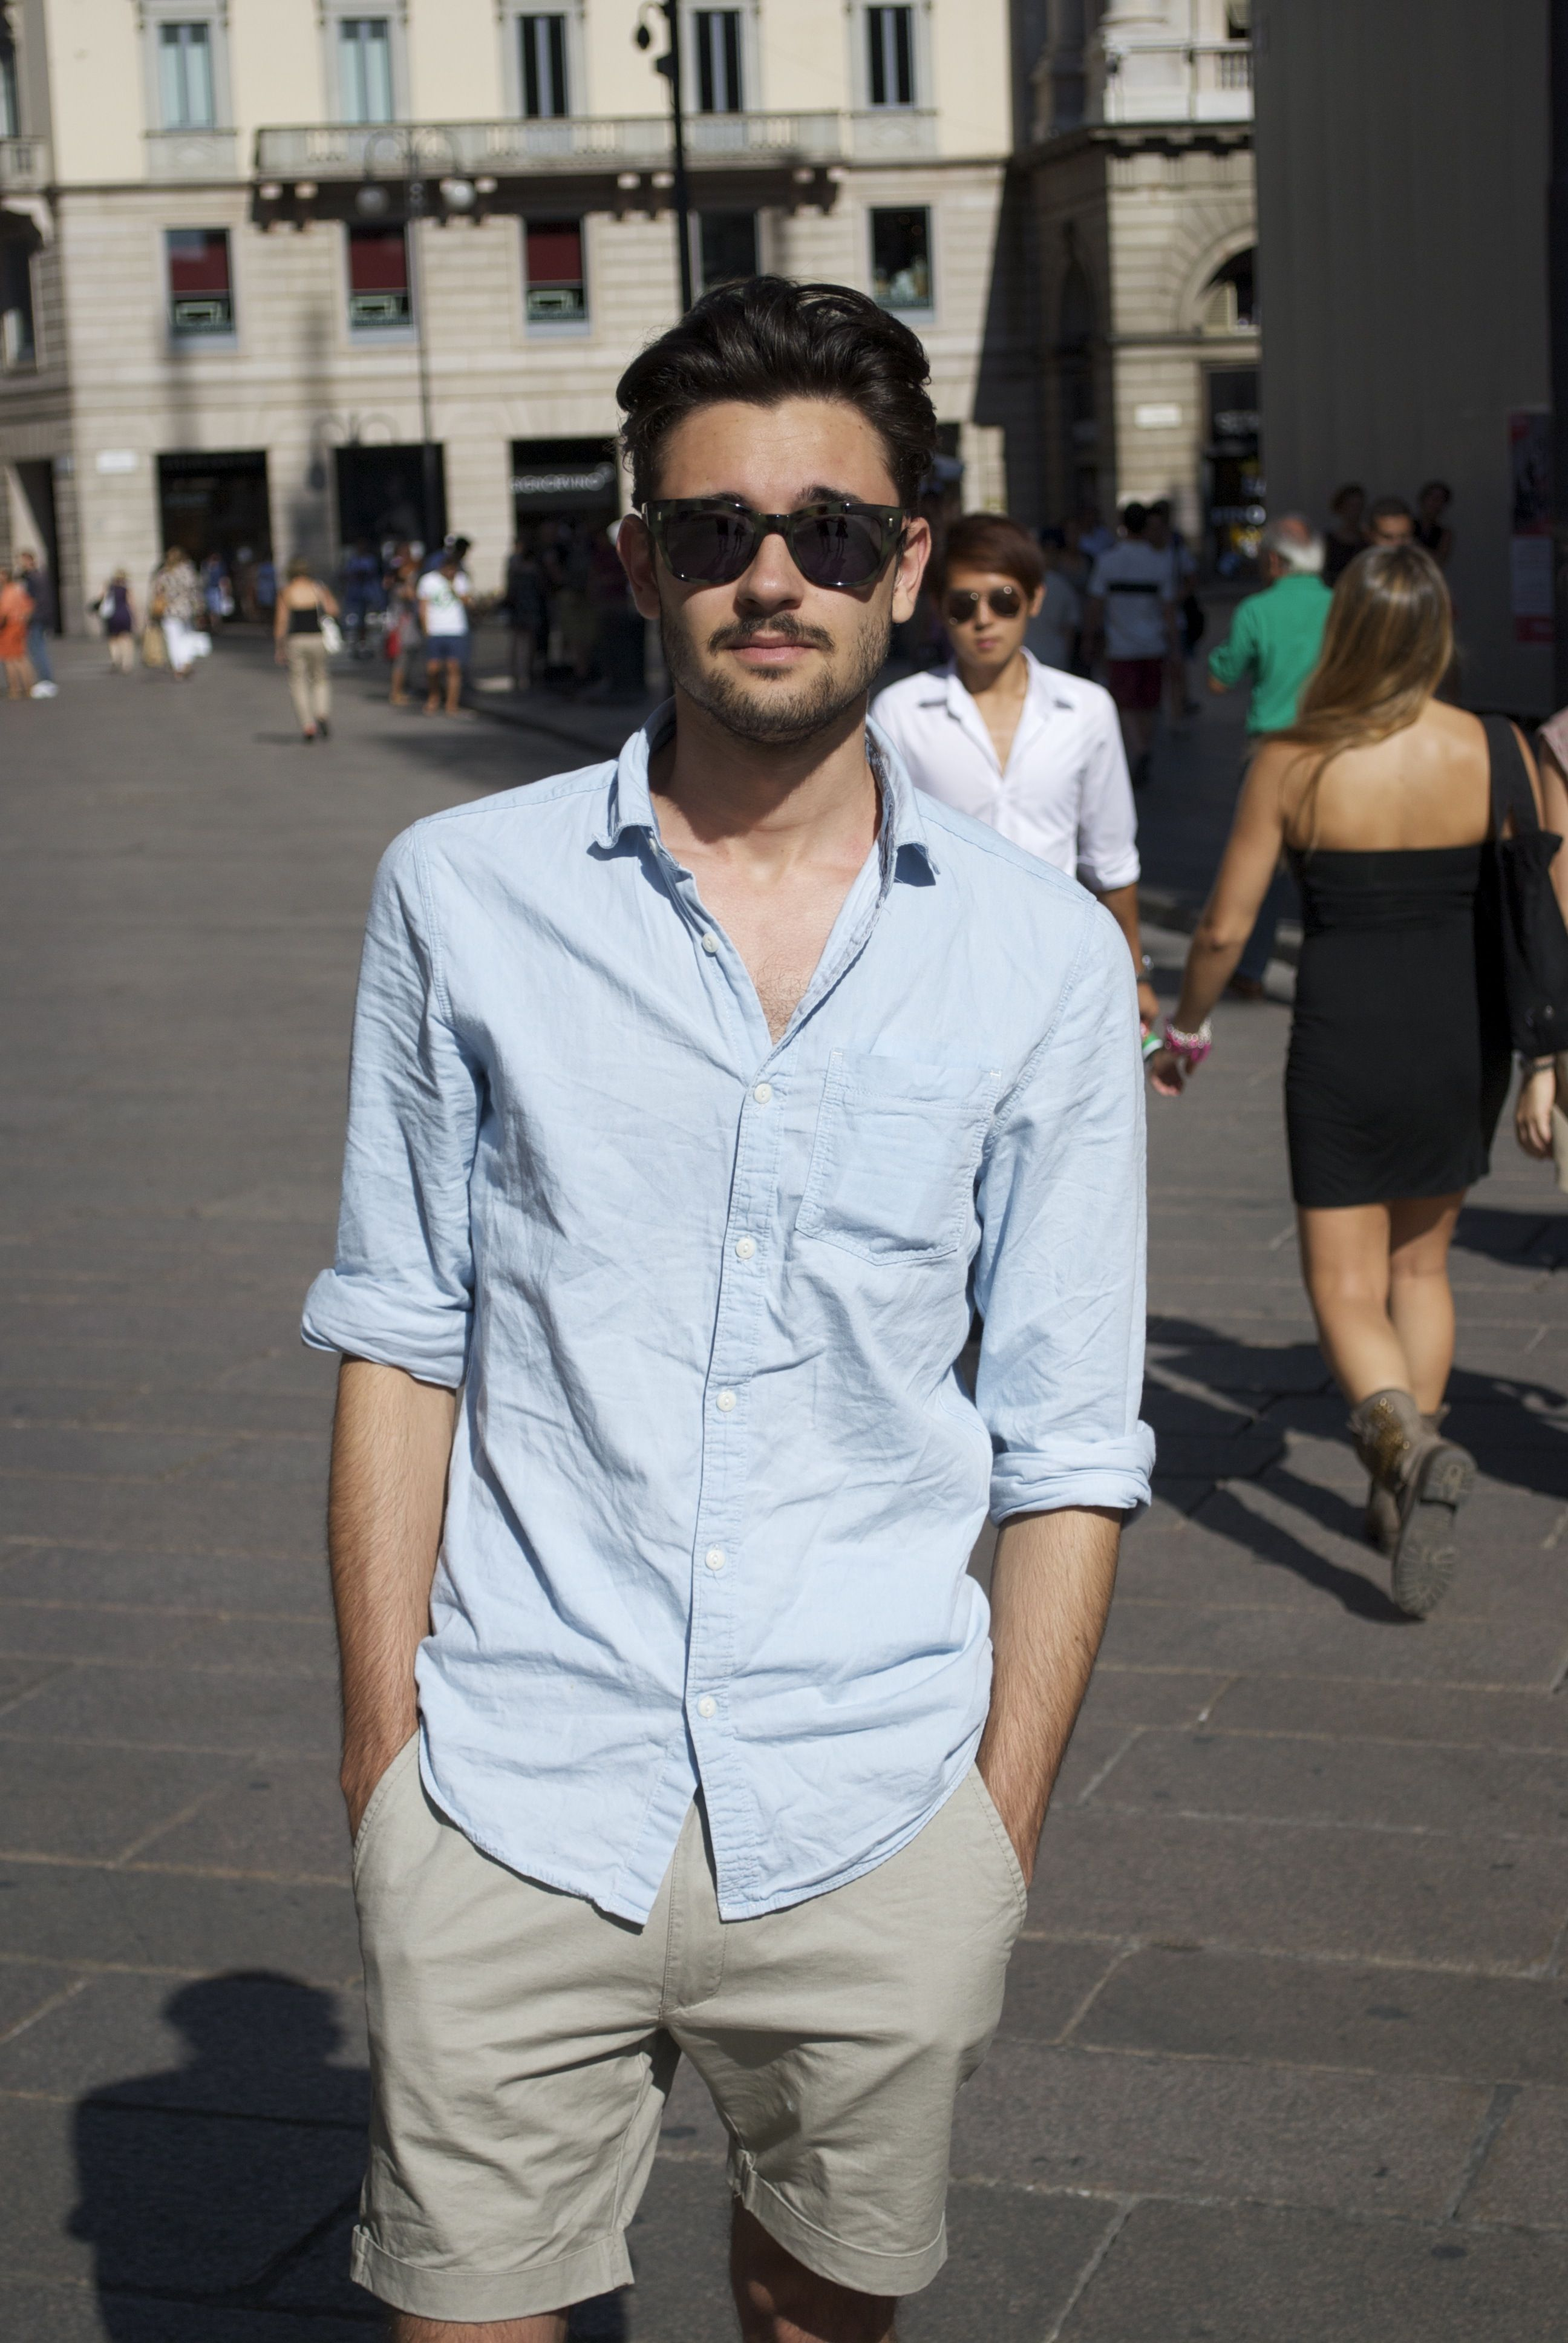 Andrea Borsotti in our 0935 sunglasses. Lives in Milan studying at Università Cattolica del Sacro Cuore